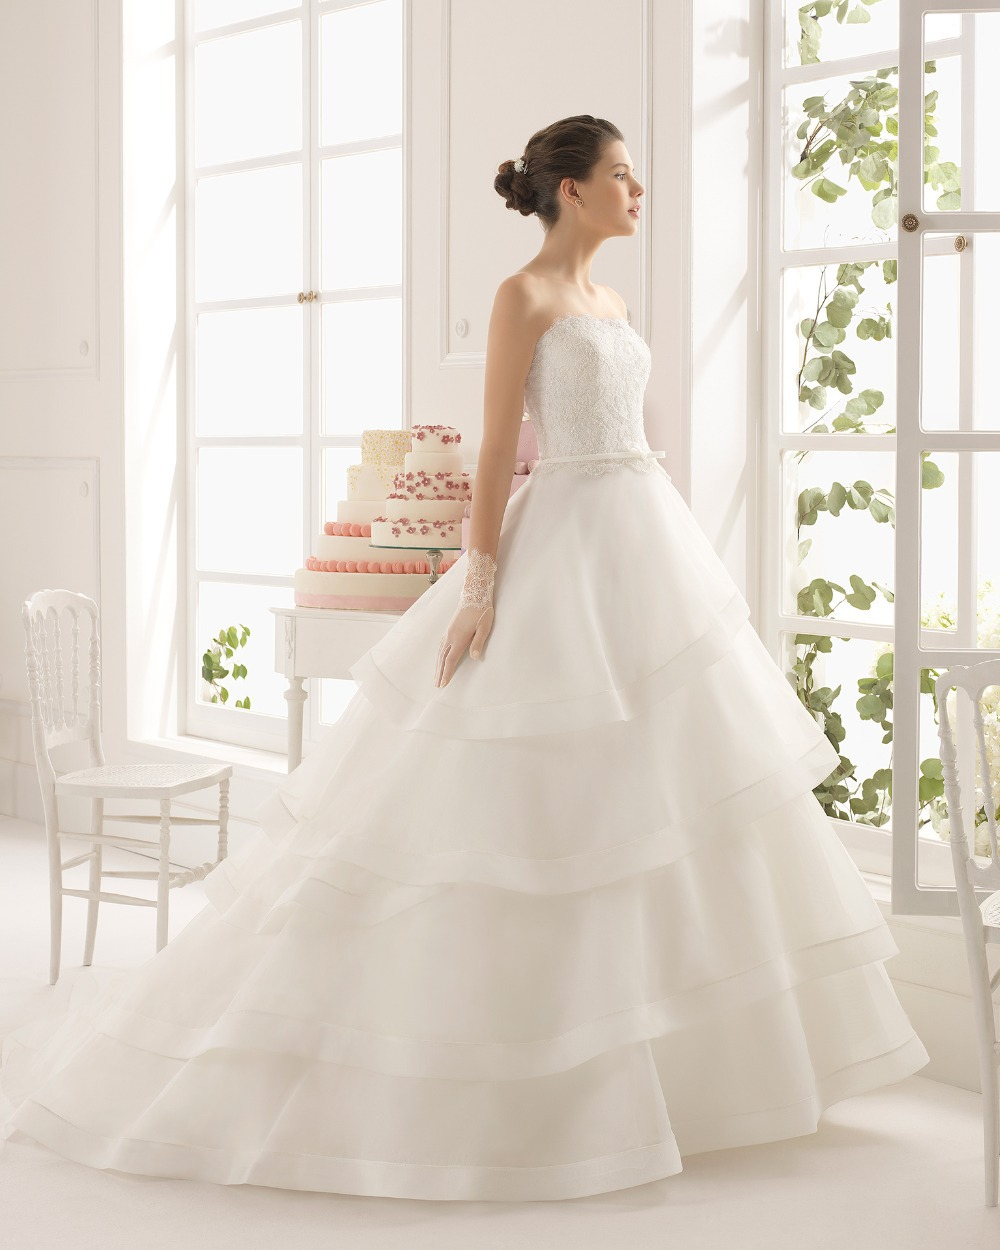 New Model 2015 Wedding Dress Ball Gown Beading Lace Patterns Organza Layered Skirt Dresses In Dubai From Weddings